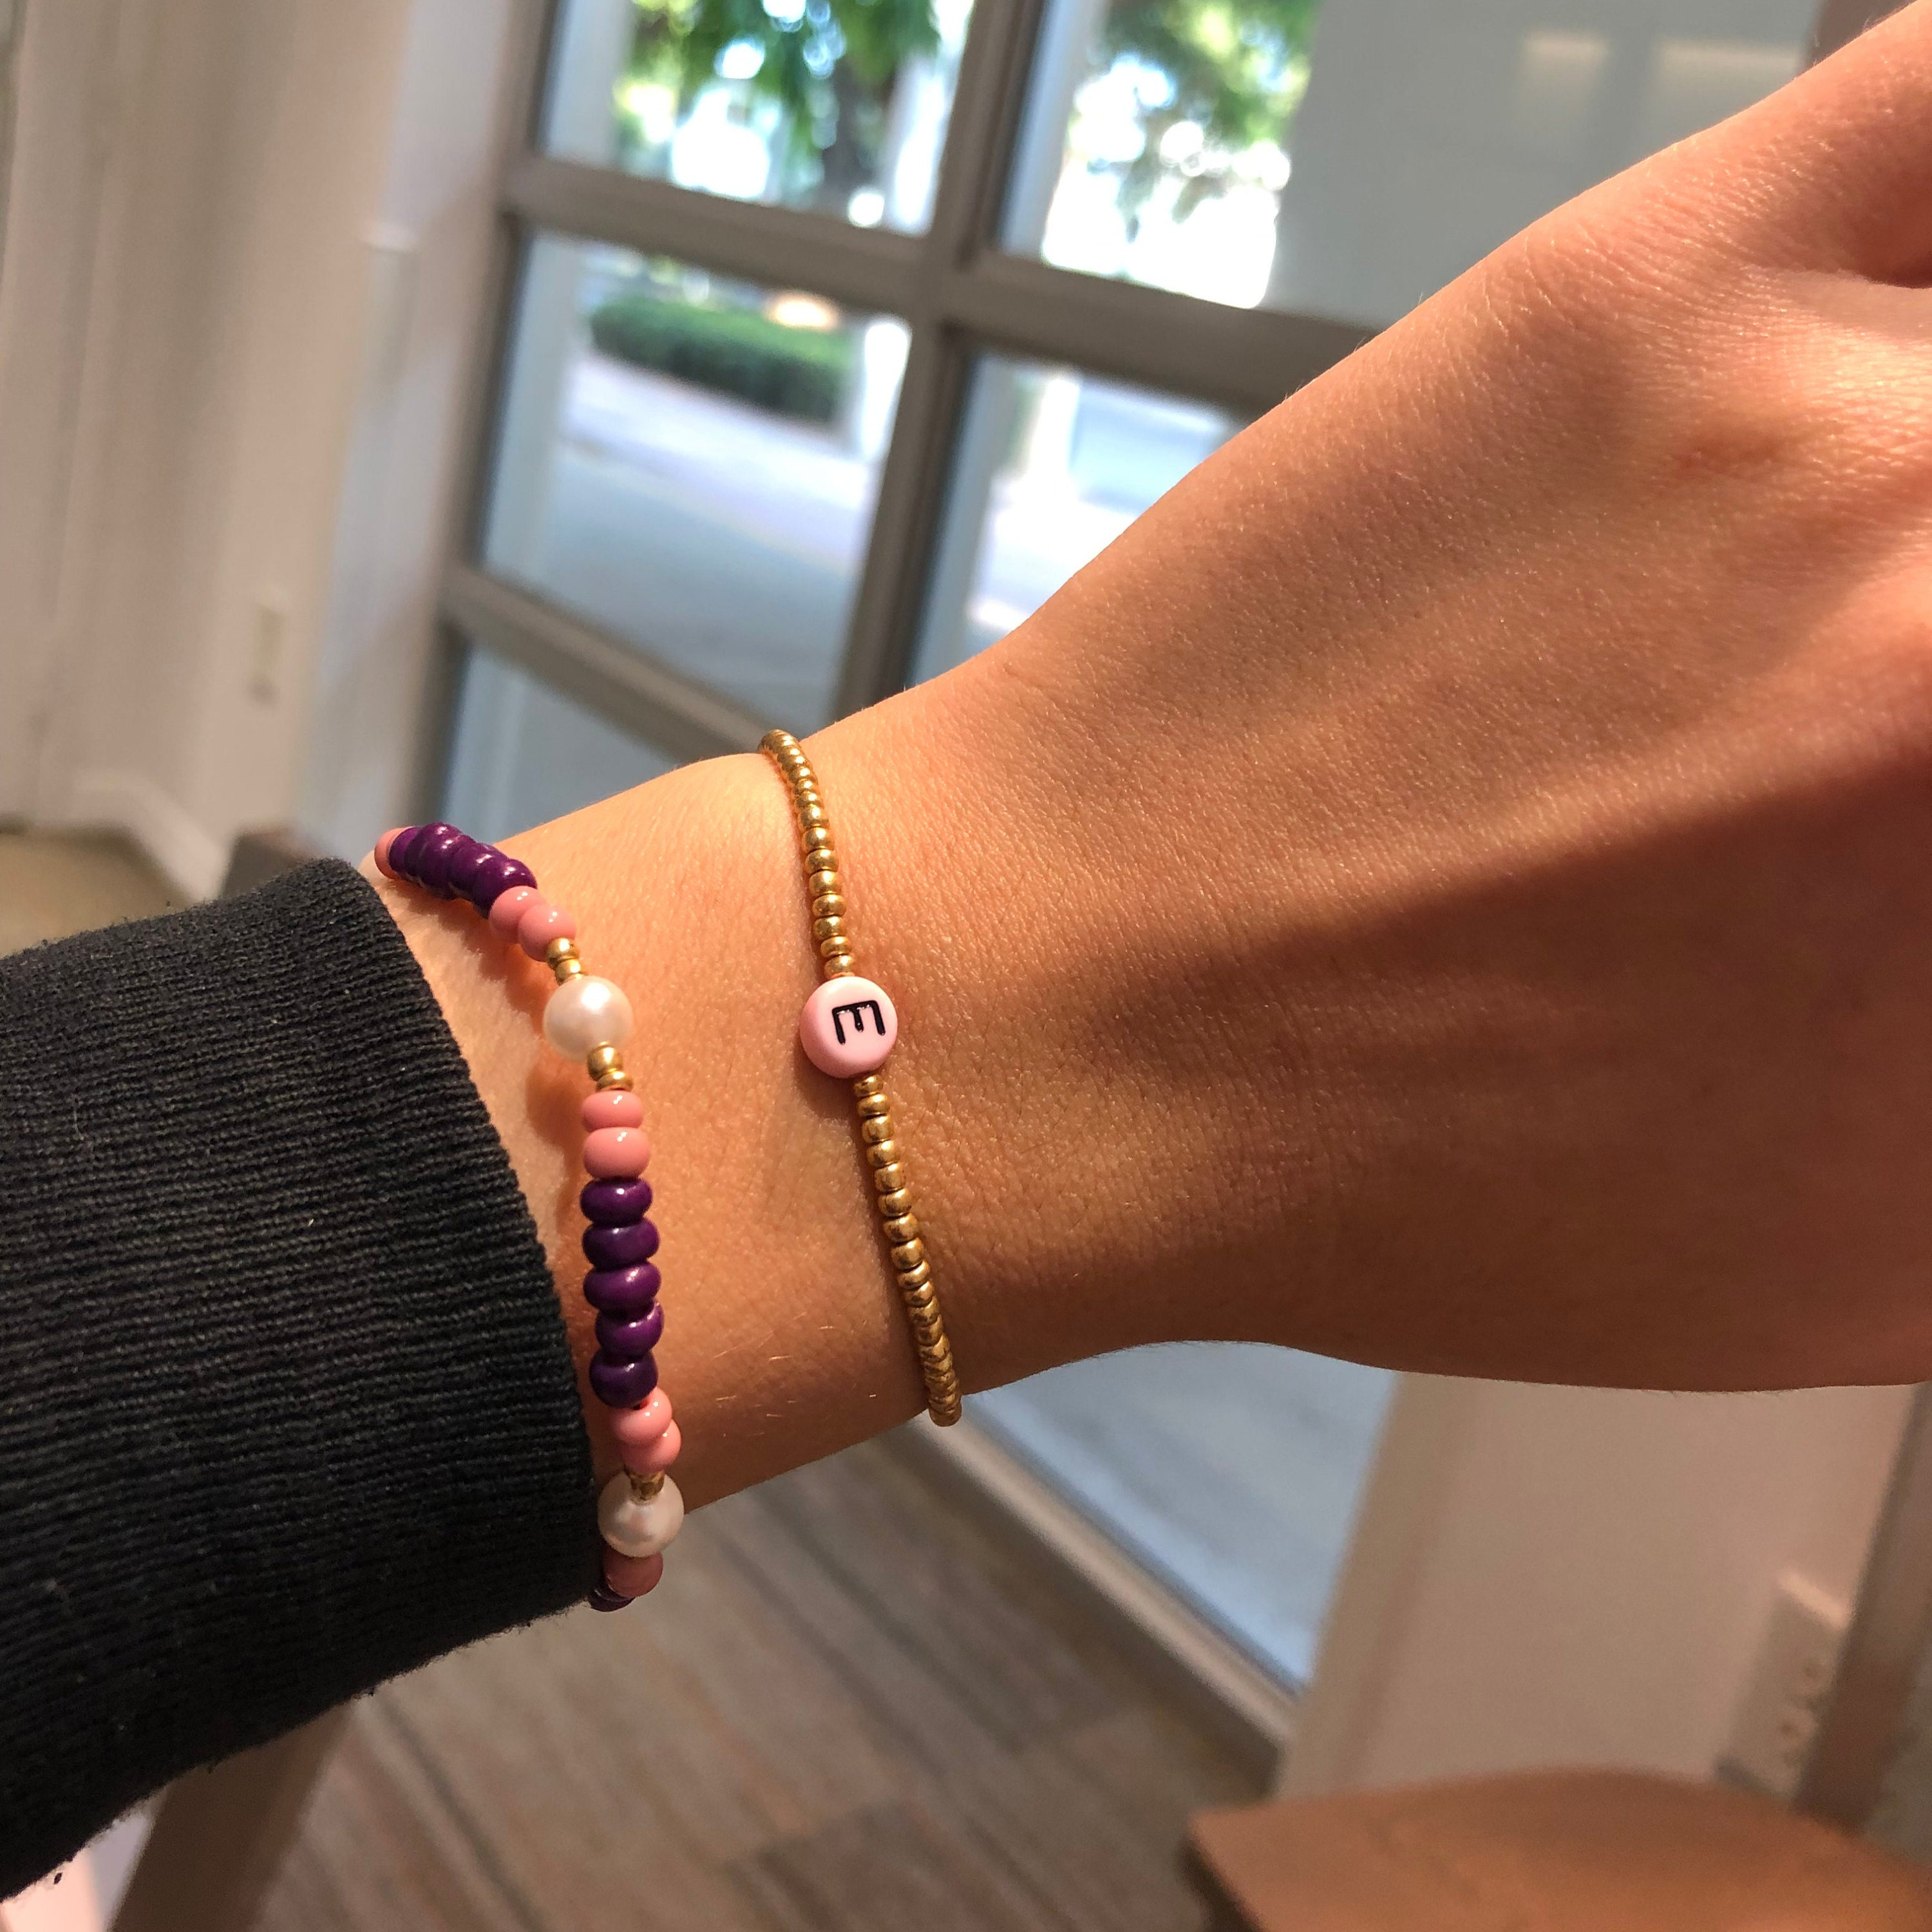 Ella Mieser added a photo of their purchase